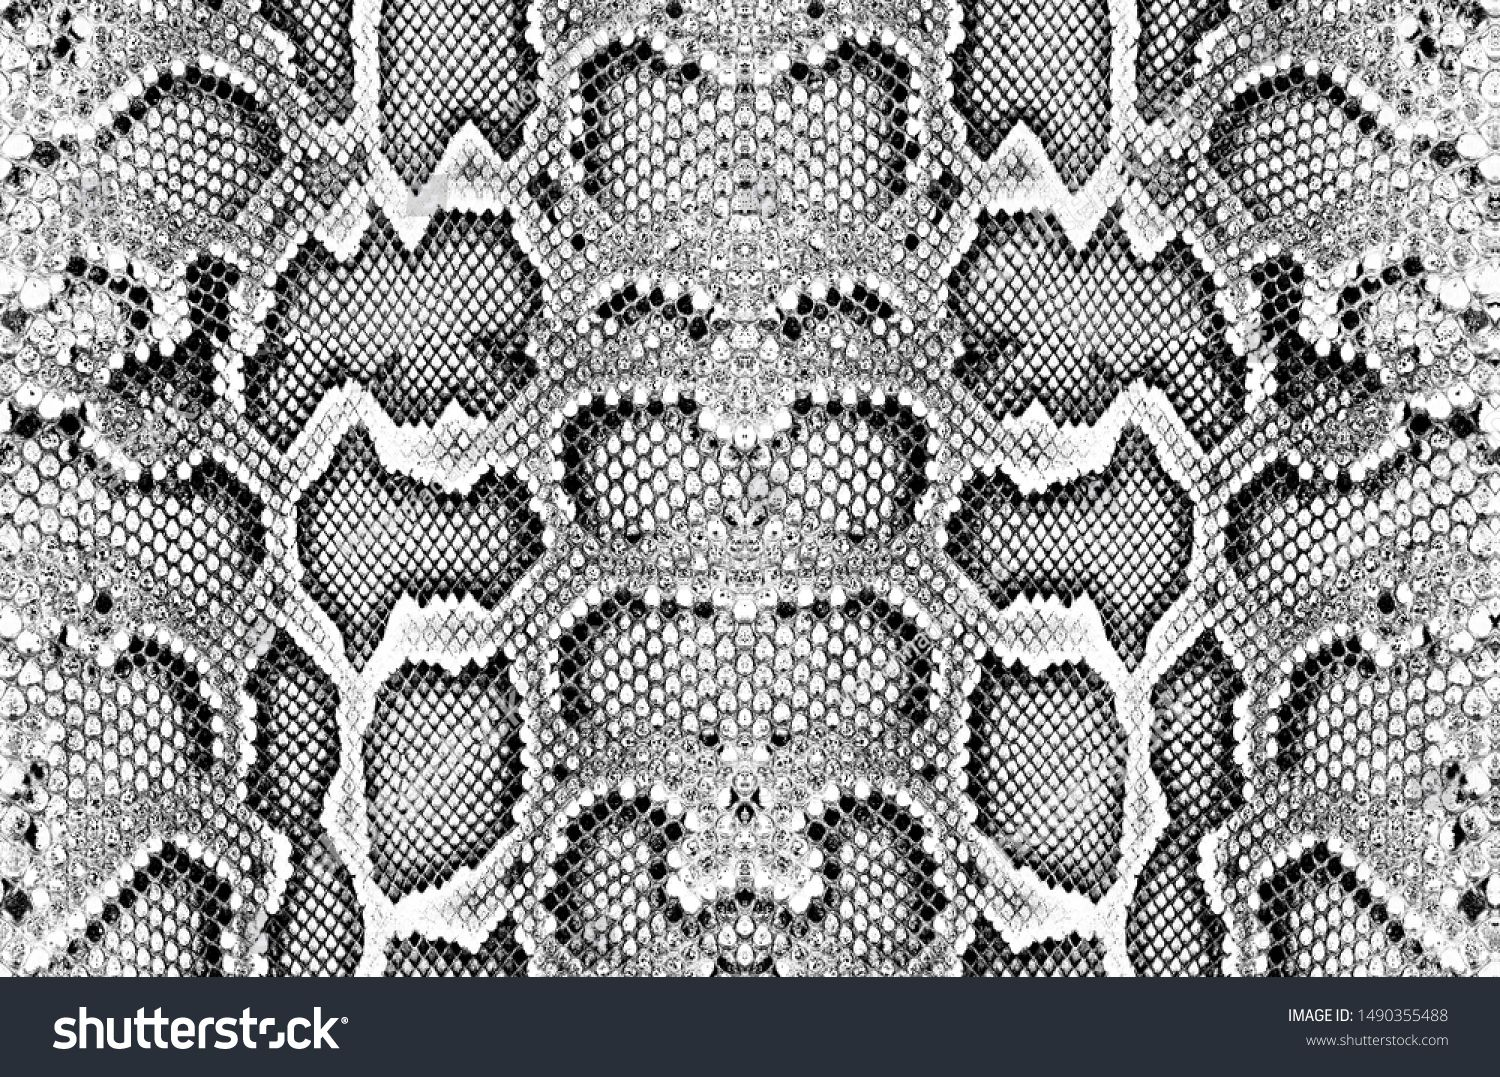 Snake Skin Pattern Texture Repeating Seamless Monochrome Texture Snake Fashionable Print Fashion And Styl Textures Patterns Snake Skin Pattern Snake Patterns